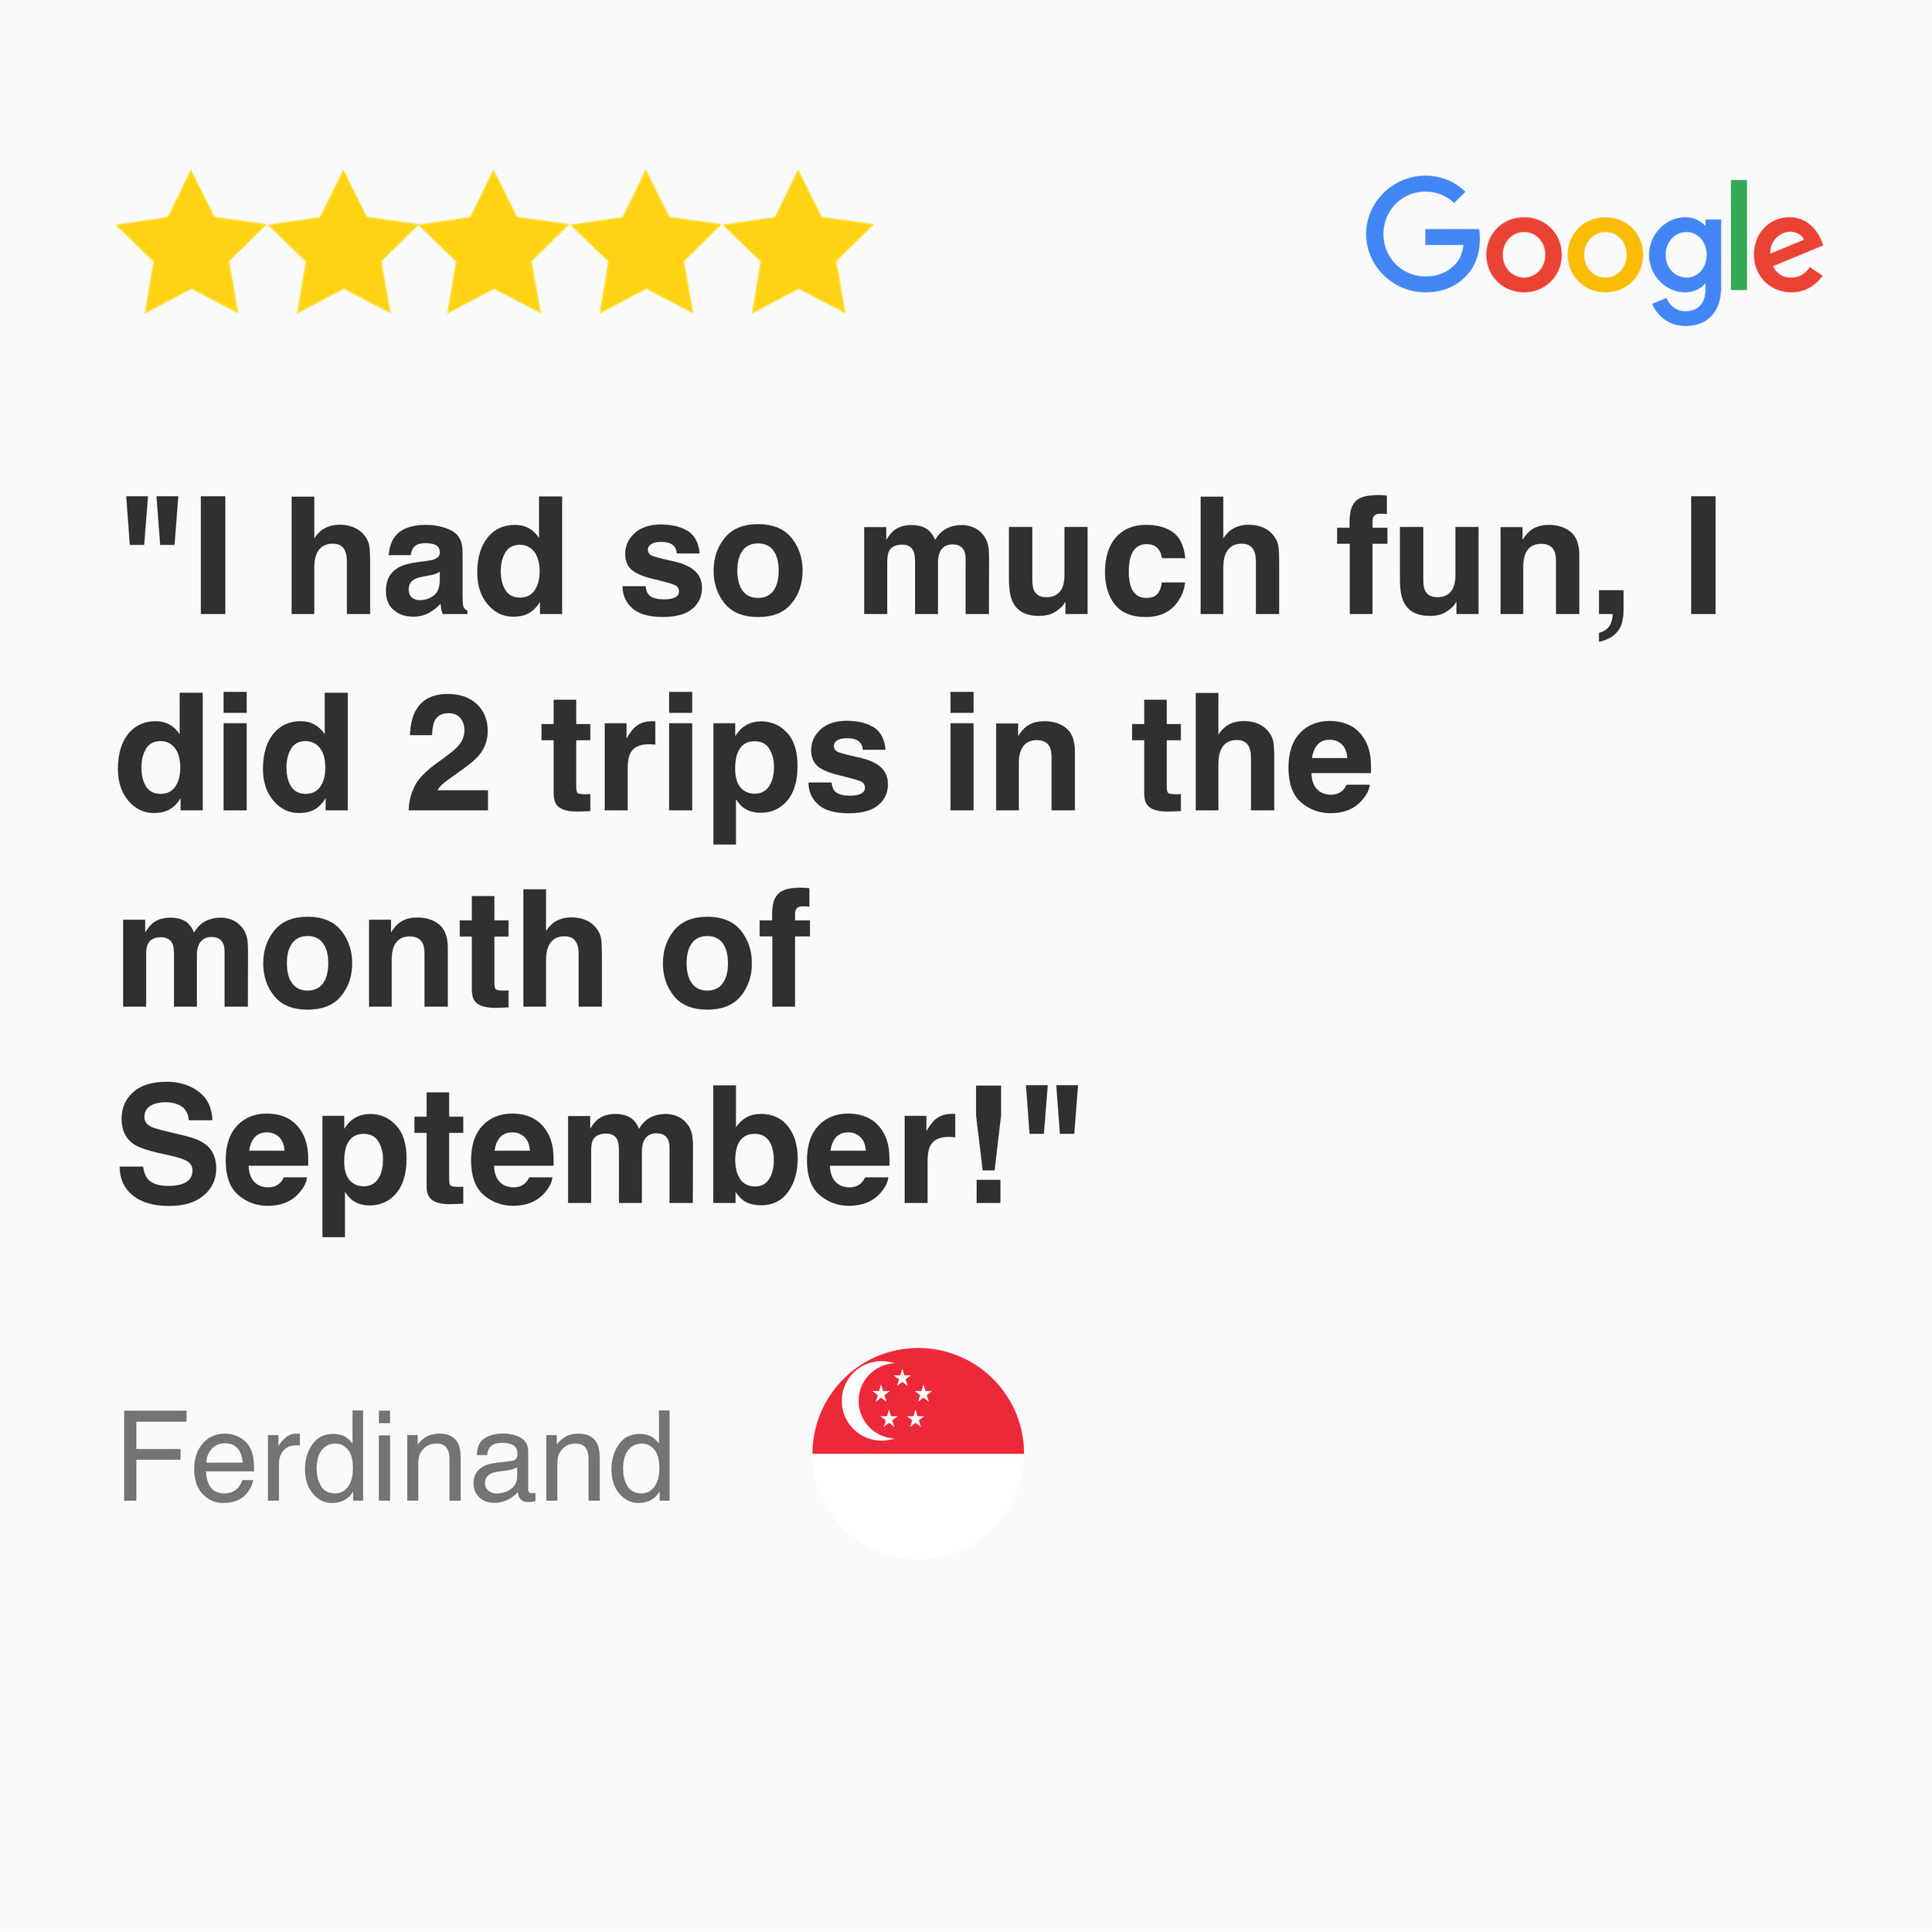 5 star google review for kayak fishing singapore tour, I had so much fun, I did 2 trips in the month of September!